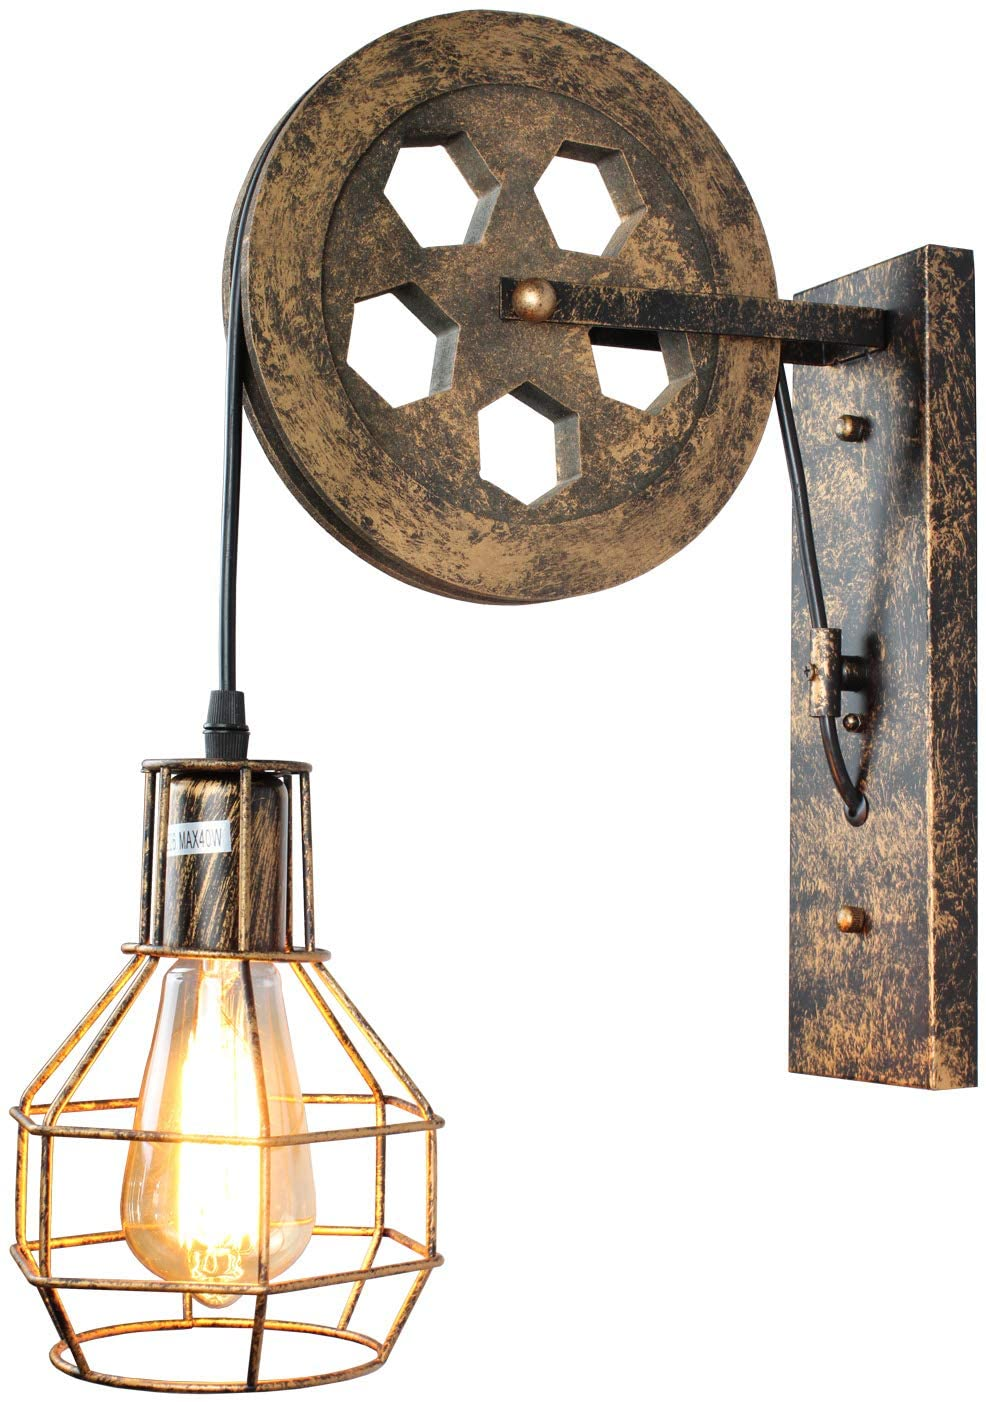 PUZHI HOME Industrial Wall Sconce Pulley Wall Lamp 1-Light Wall Light Fixtures for Indoor Lighting Bathroom Kitchen Living Room -Bronze Finished